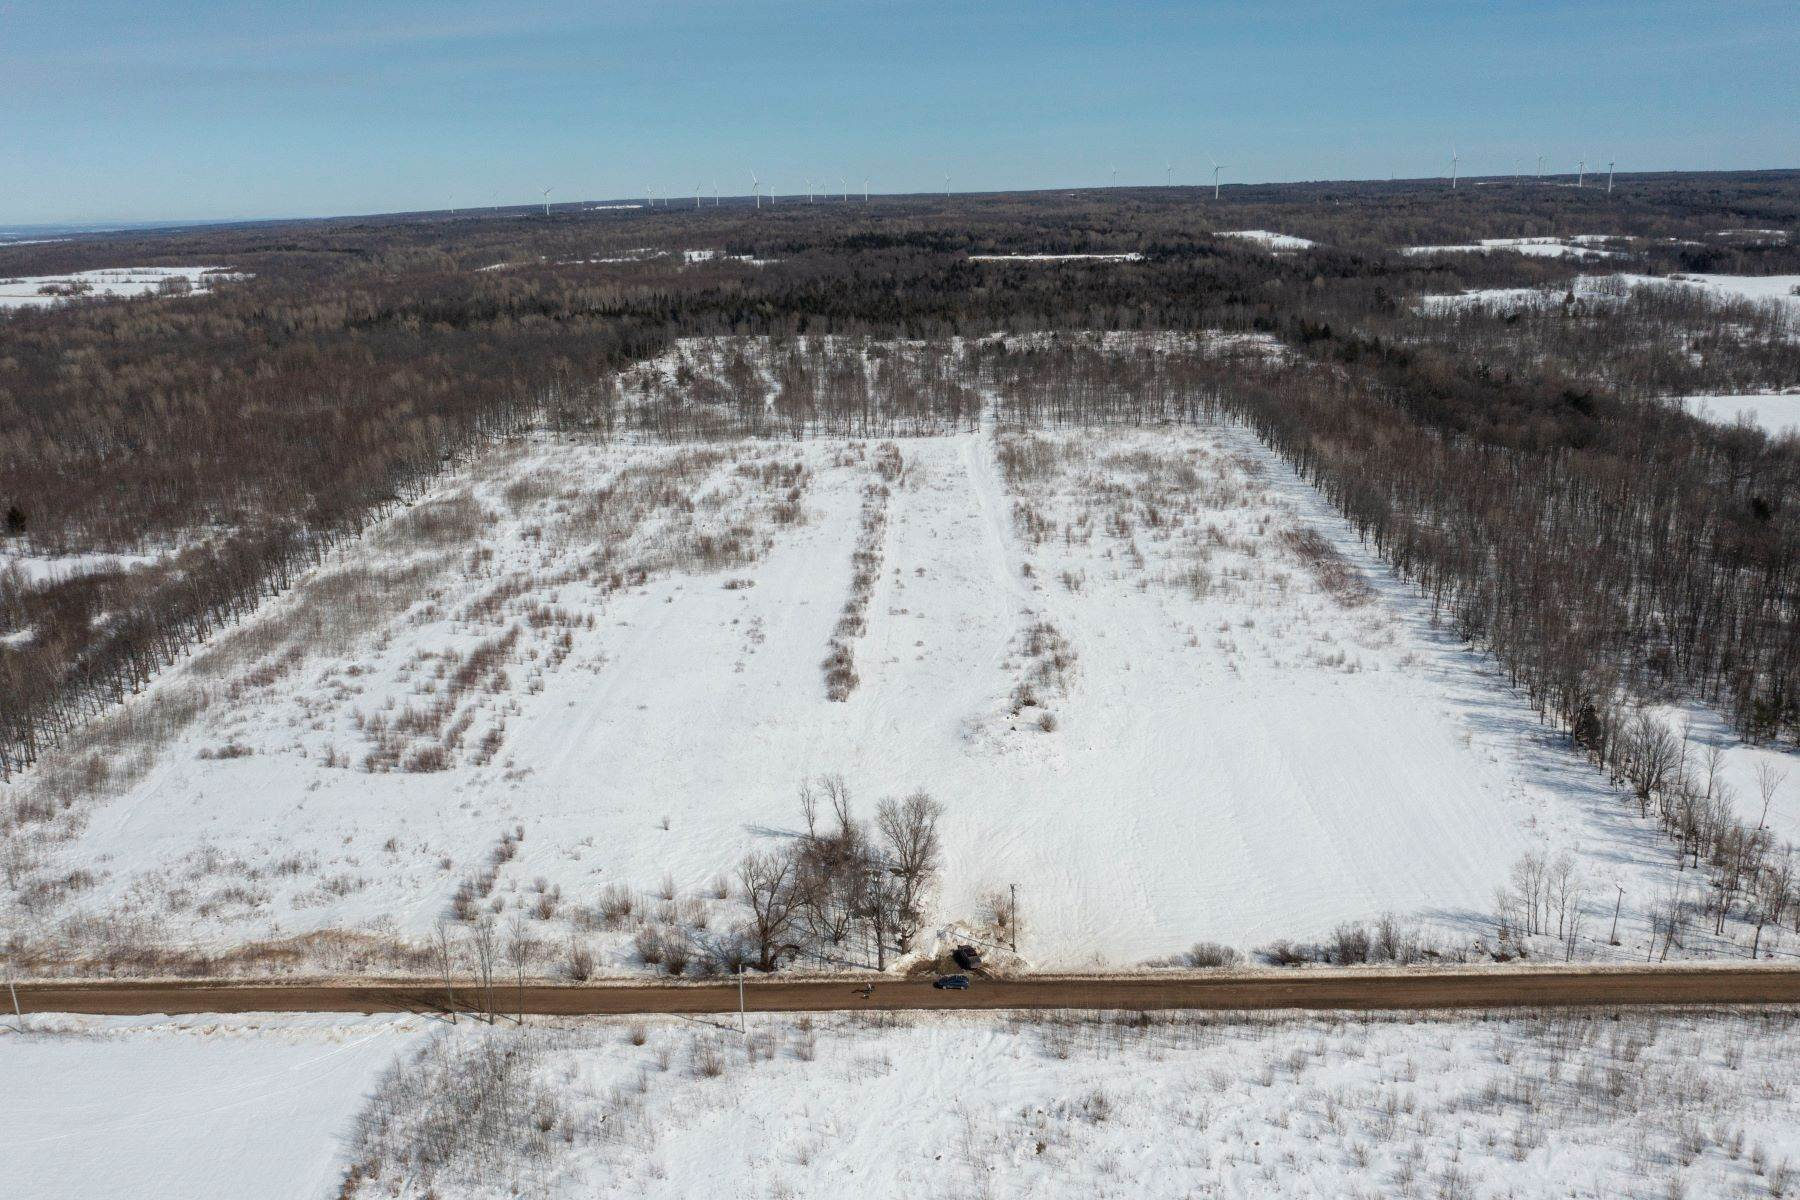 Land for Sale at 1372 County Line Road, Churubusco, NY 12923 1372 County Line Road Churubusco, New York 12923 United States